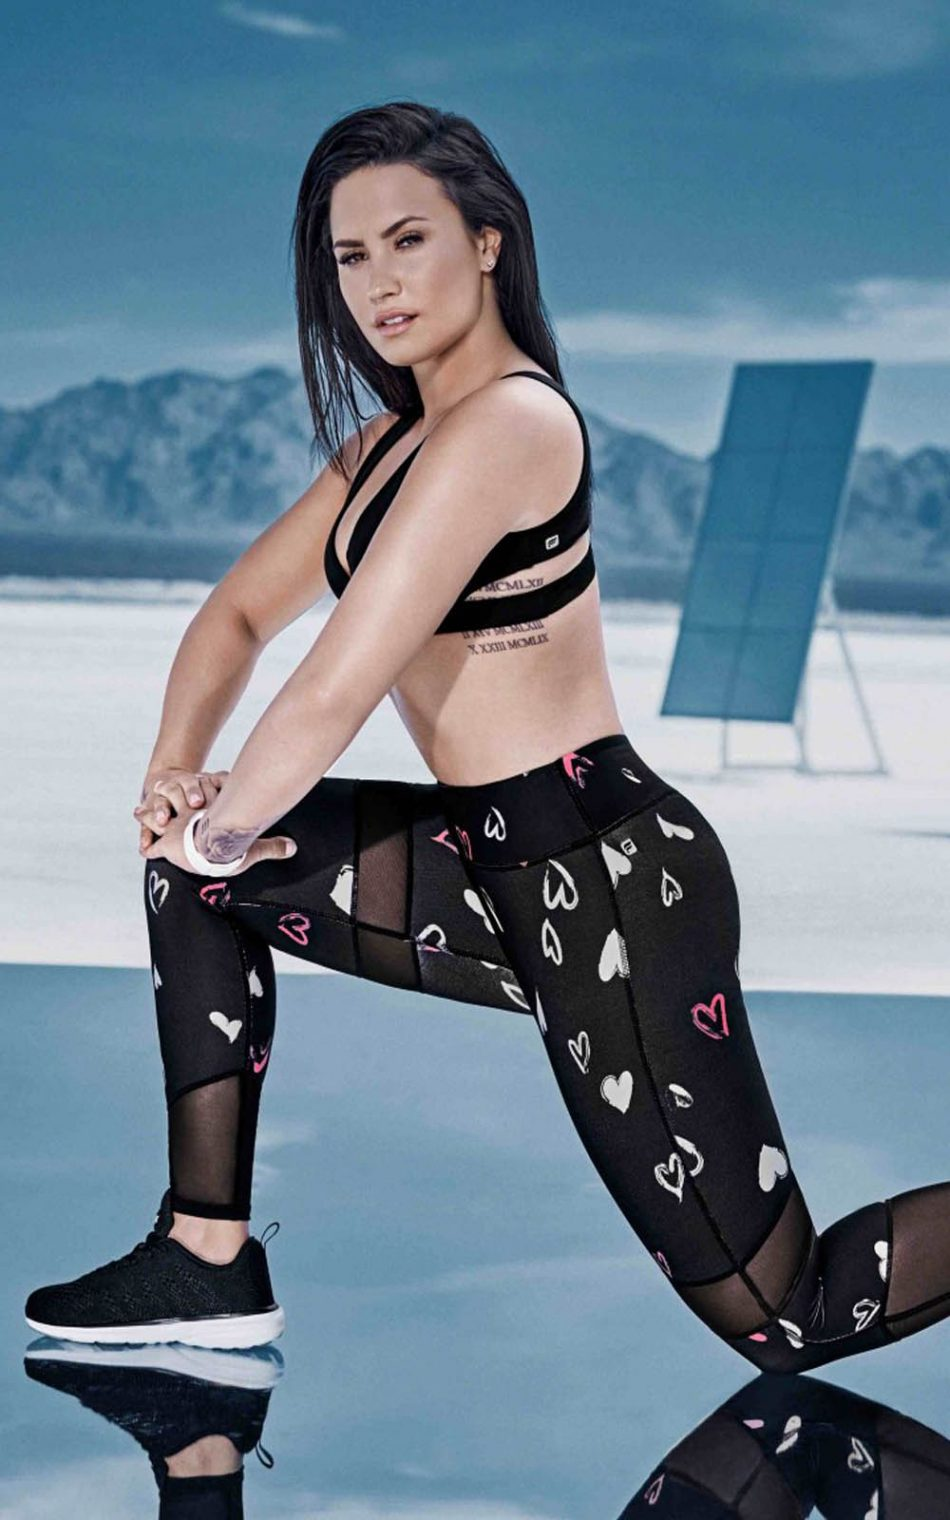 Demi Lovato Workout Outdoor Photoshoot HD Mobile Wallpaper